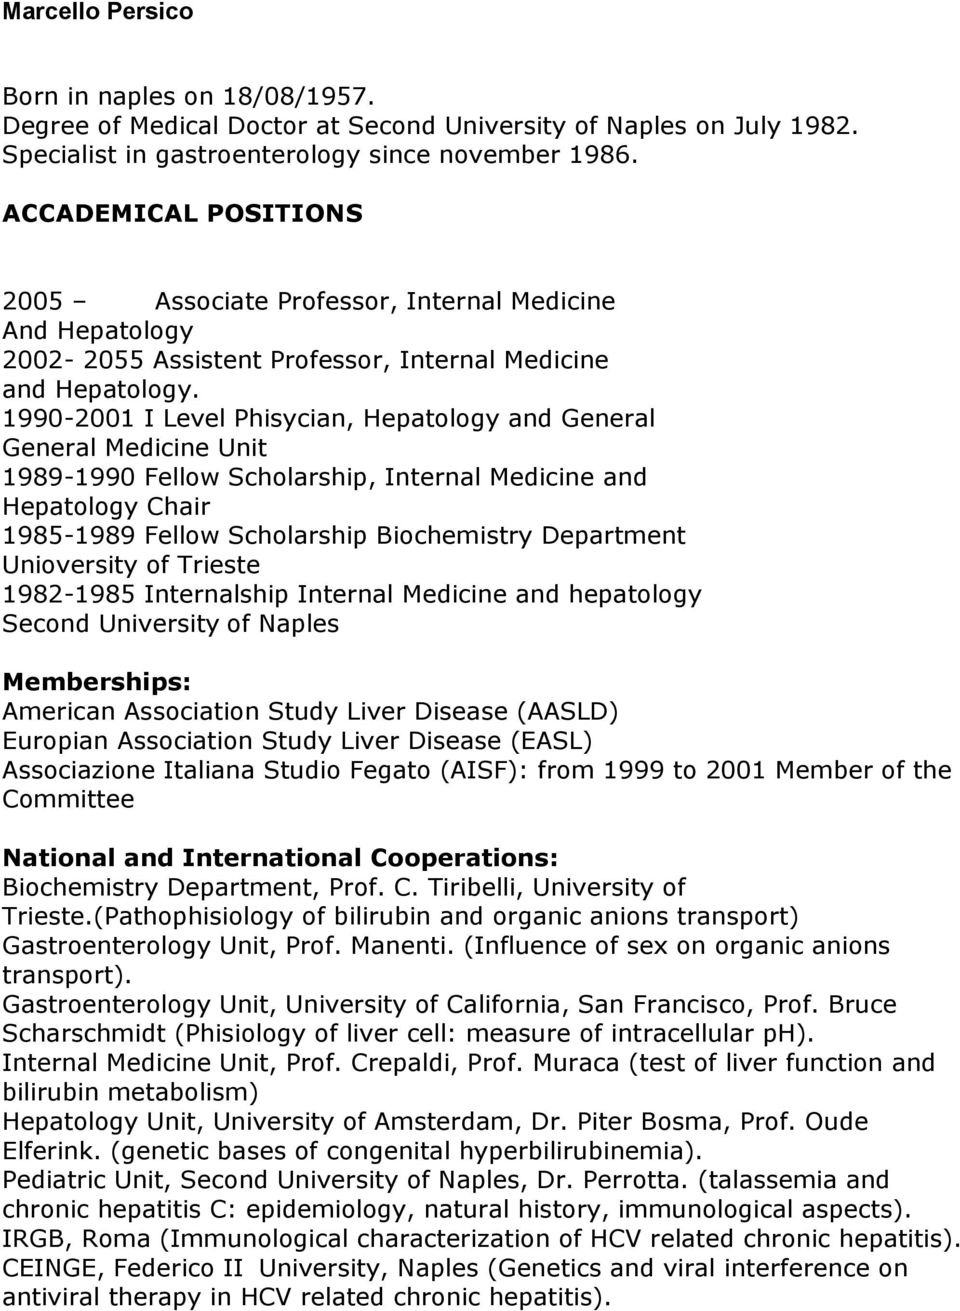 1990-2001 I Level Phisycian, Hepatology and General General Medicine Unit 1989-1990 Fellow Scholarship, Internal Medicine and Hepatology Chair 1985-1989 Fellow Scholarship Biochemistry Department